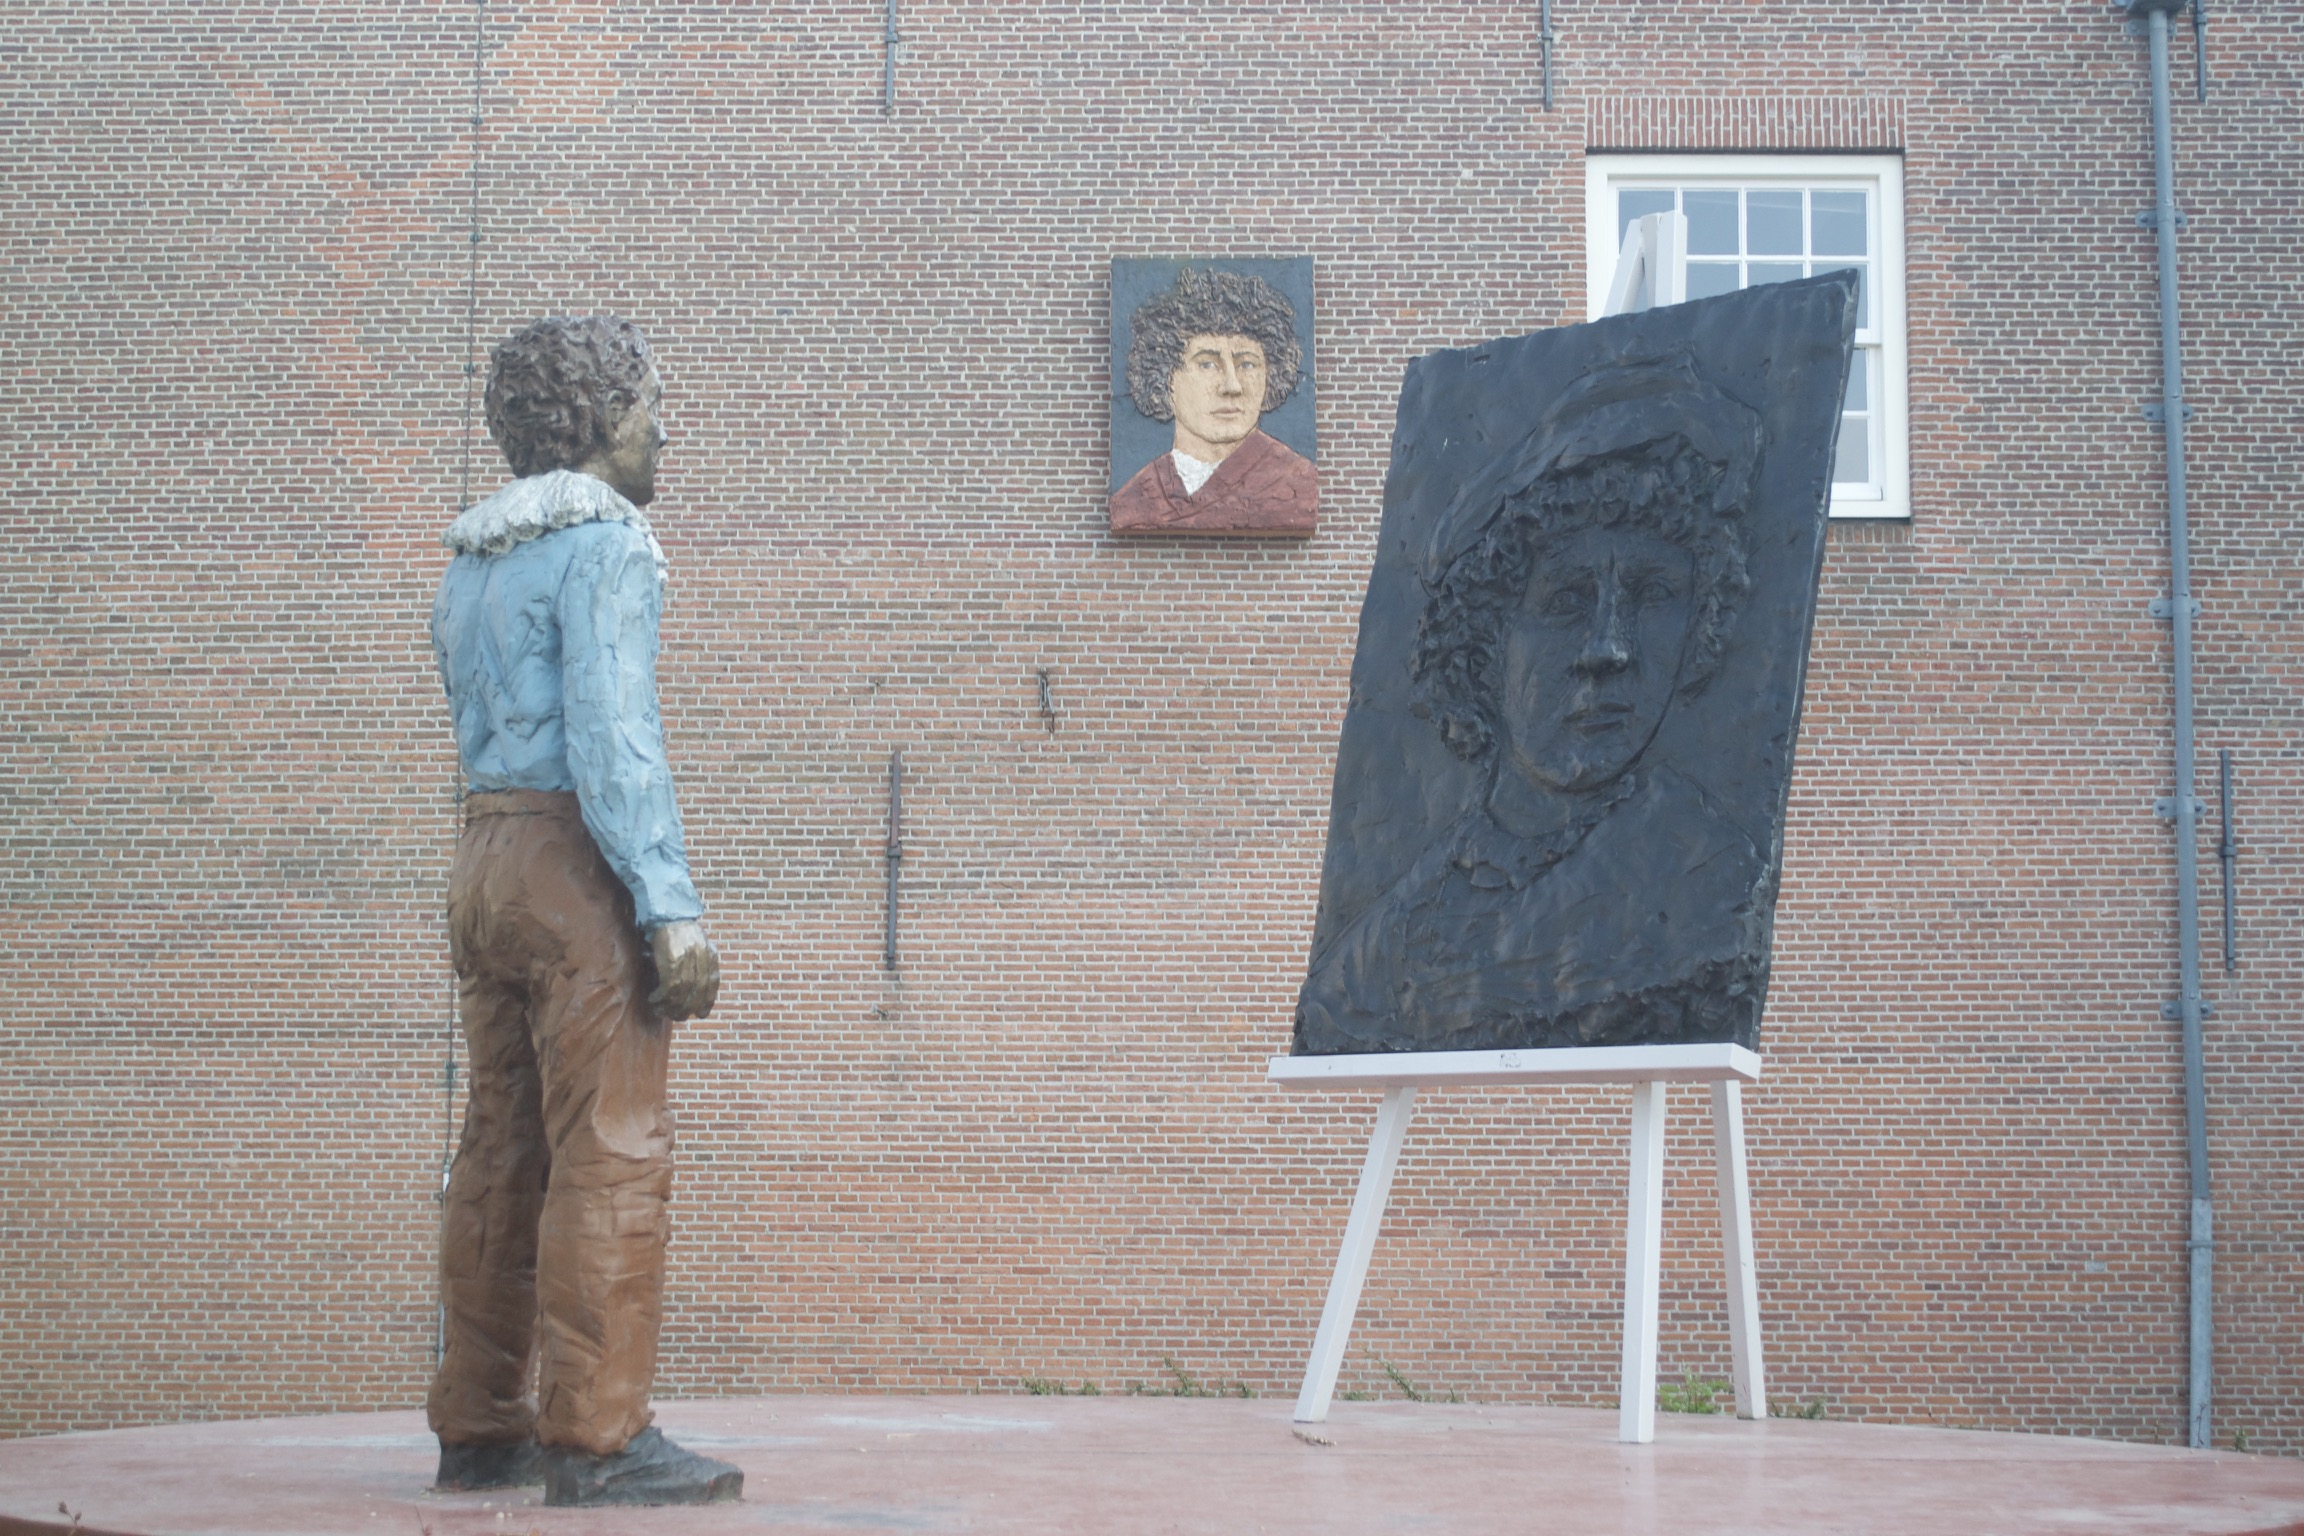 A statue of a man looking at a canvas with another man's face.  That same image hangs on a wall in the background.